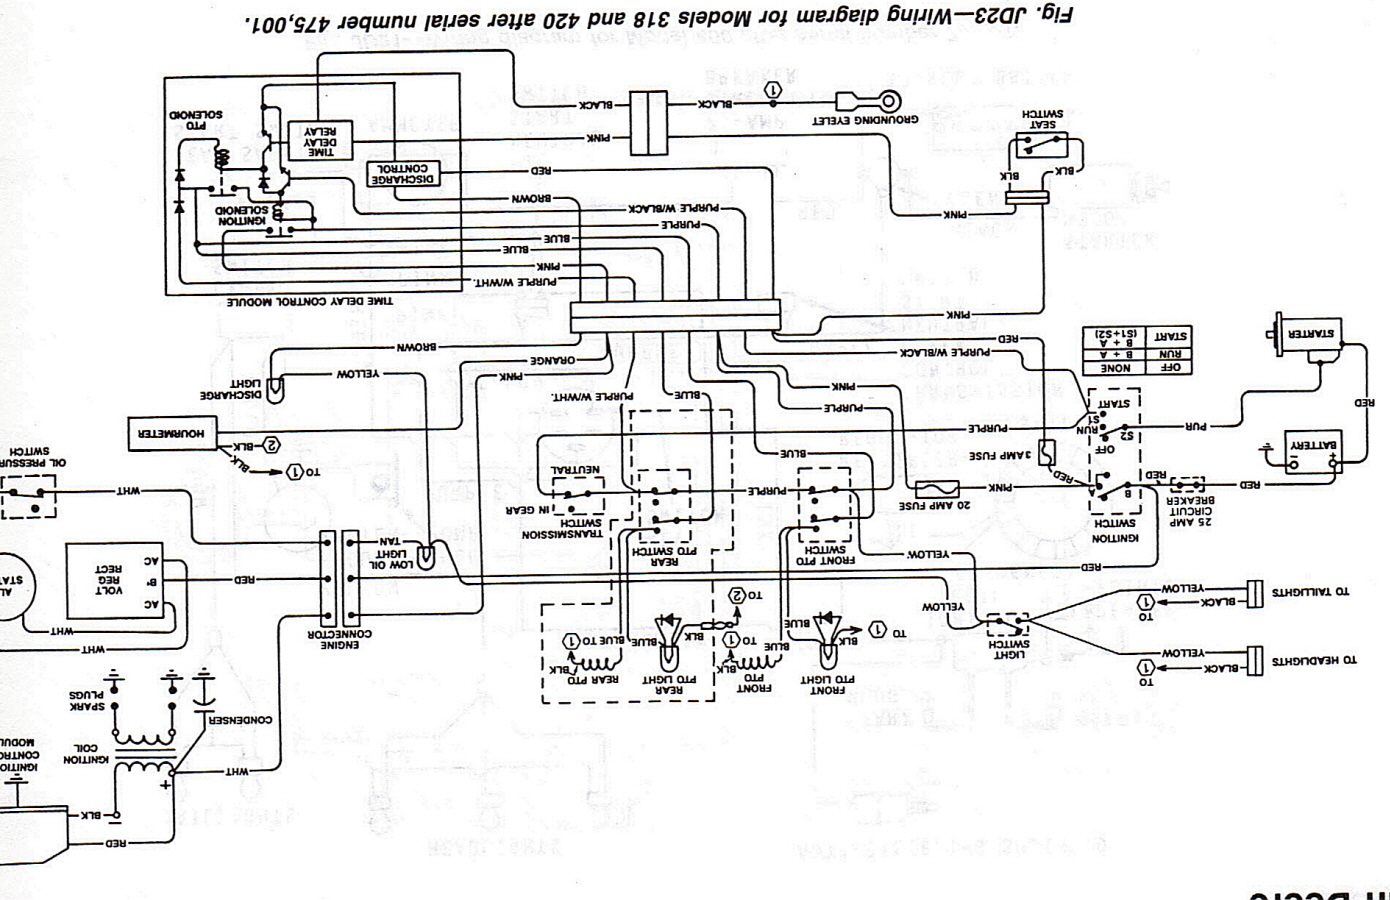 john deere 318 engine diagram john deere 318 wiring